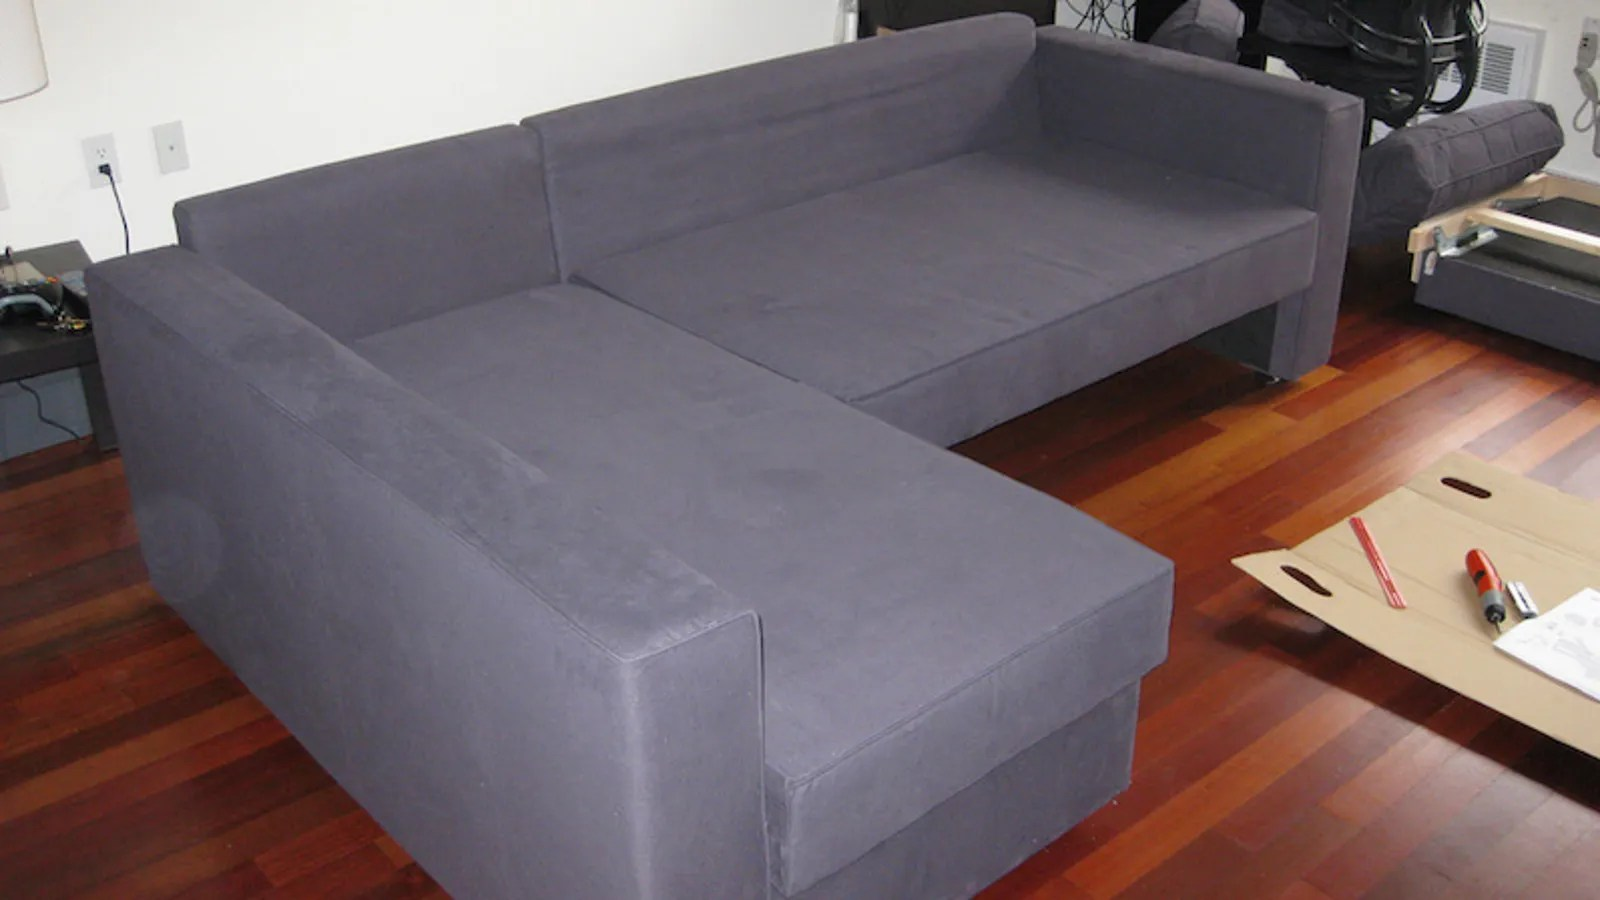 Sofa Foam Cleaner Clean Your Couch With Baking Soda To Remove Grime